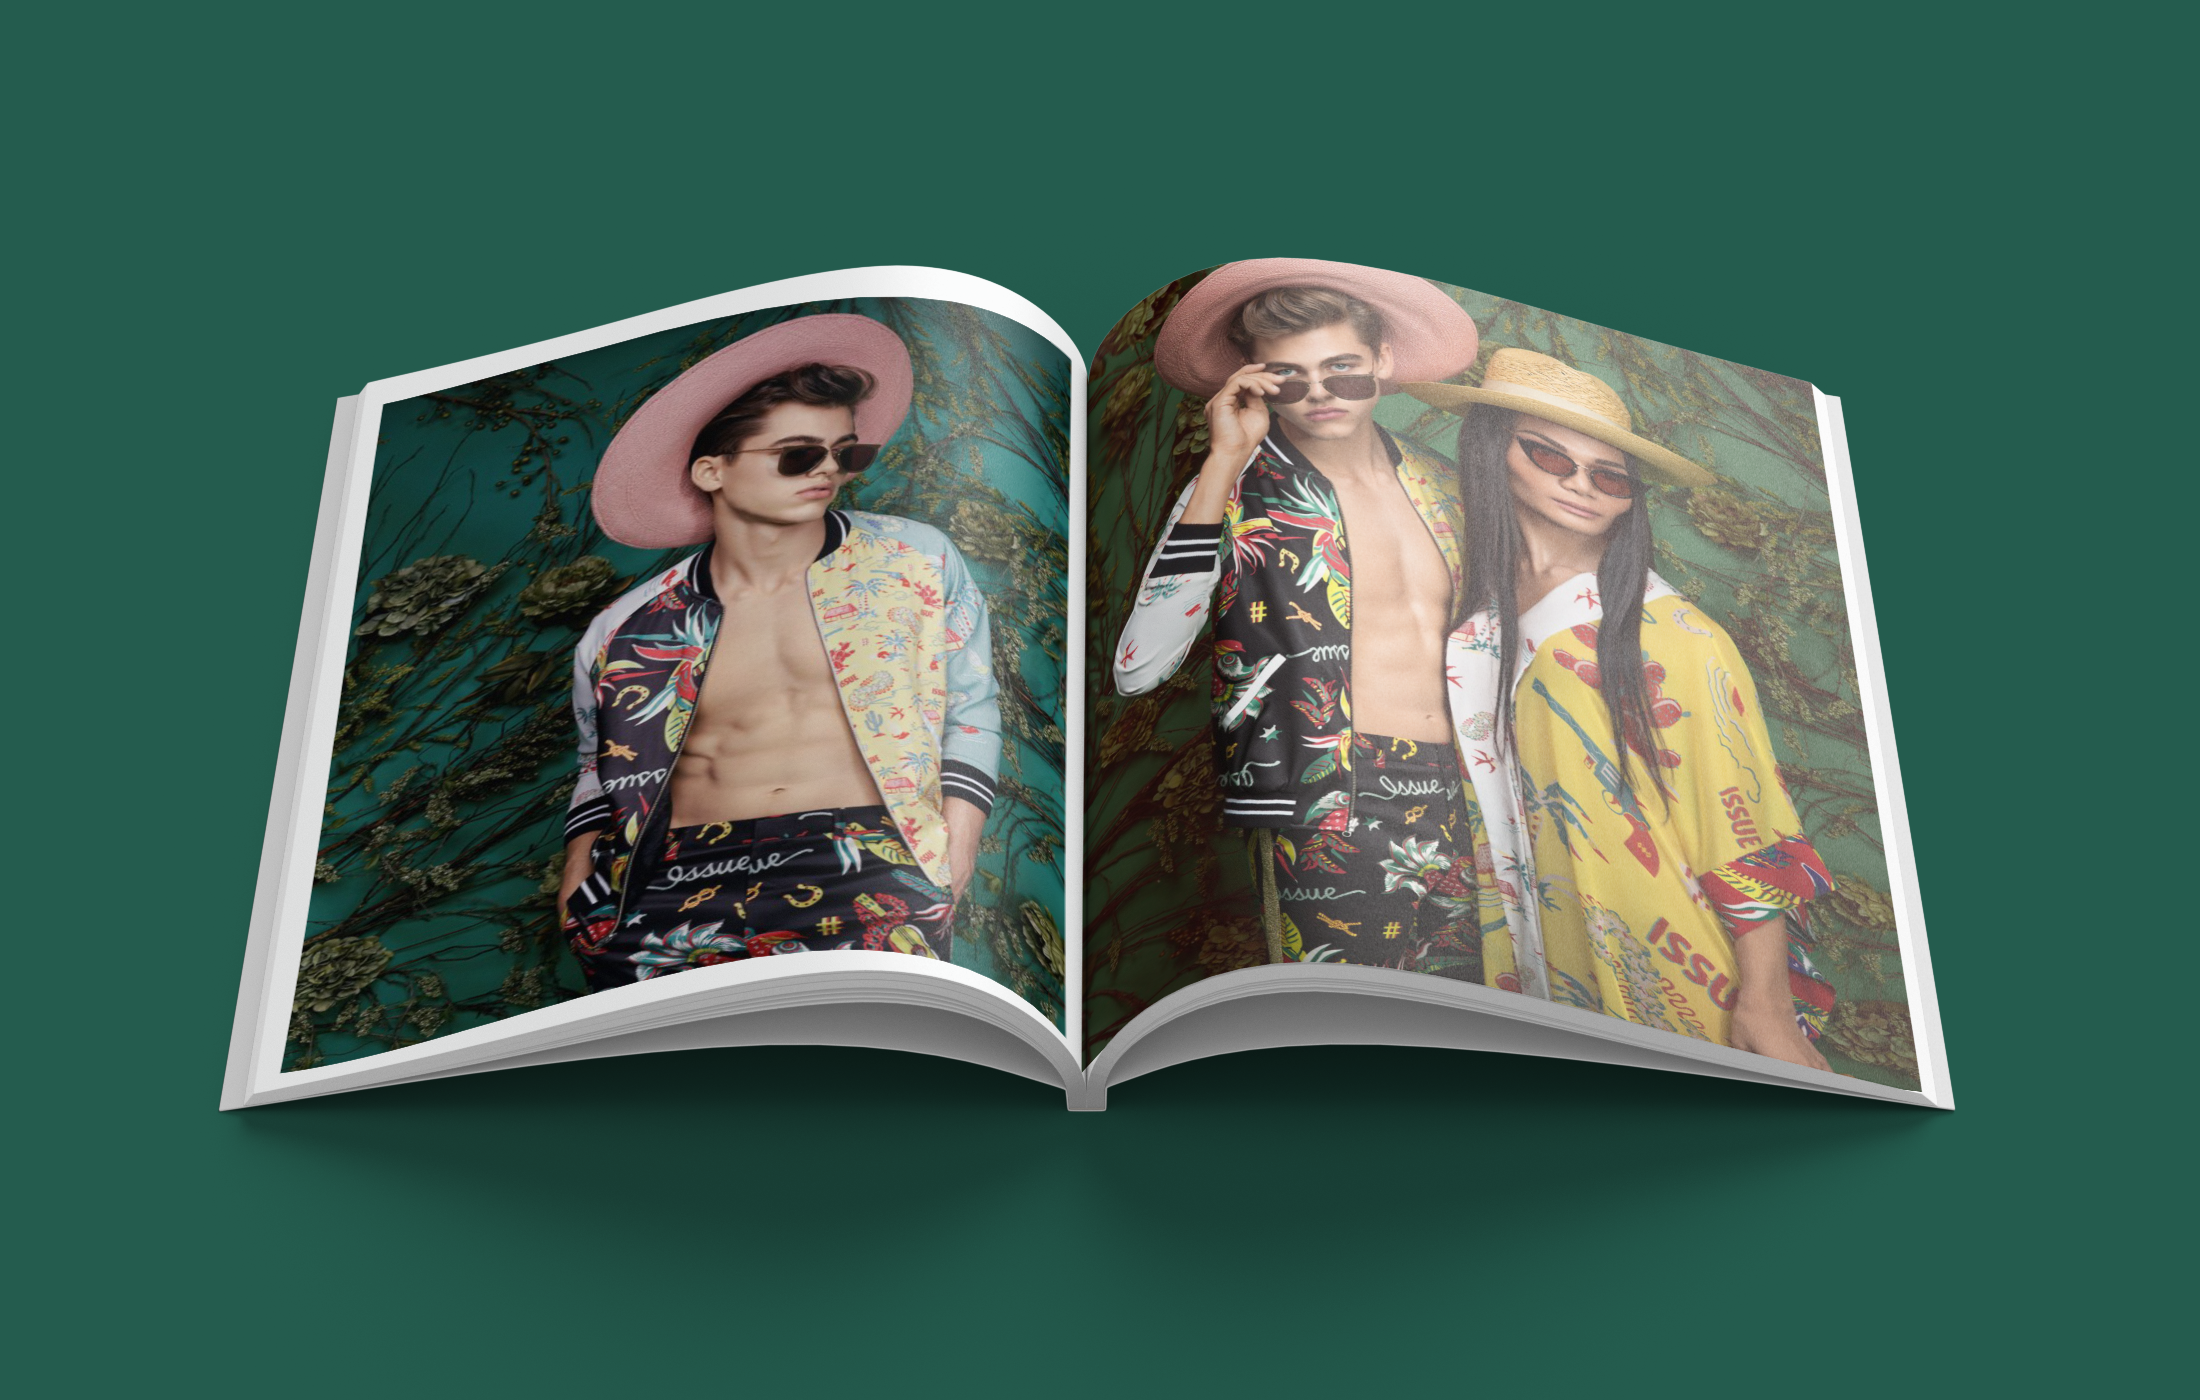 7 Fashion Magazines Where You Can Submit Your Work – The H Hub